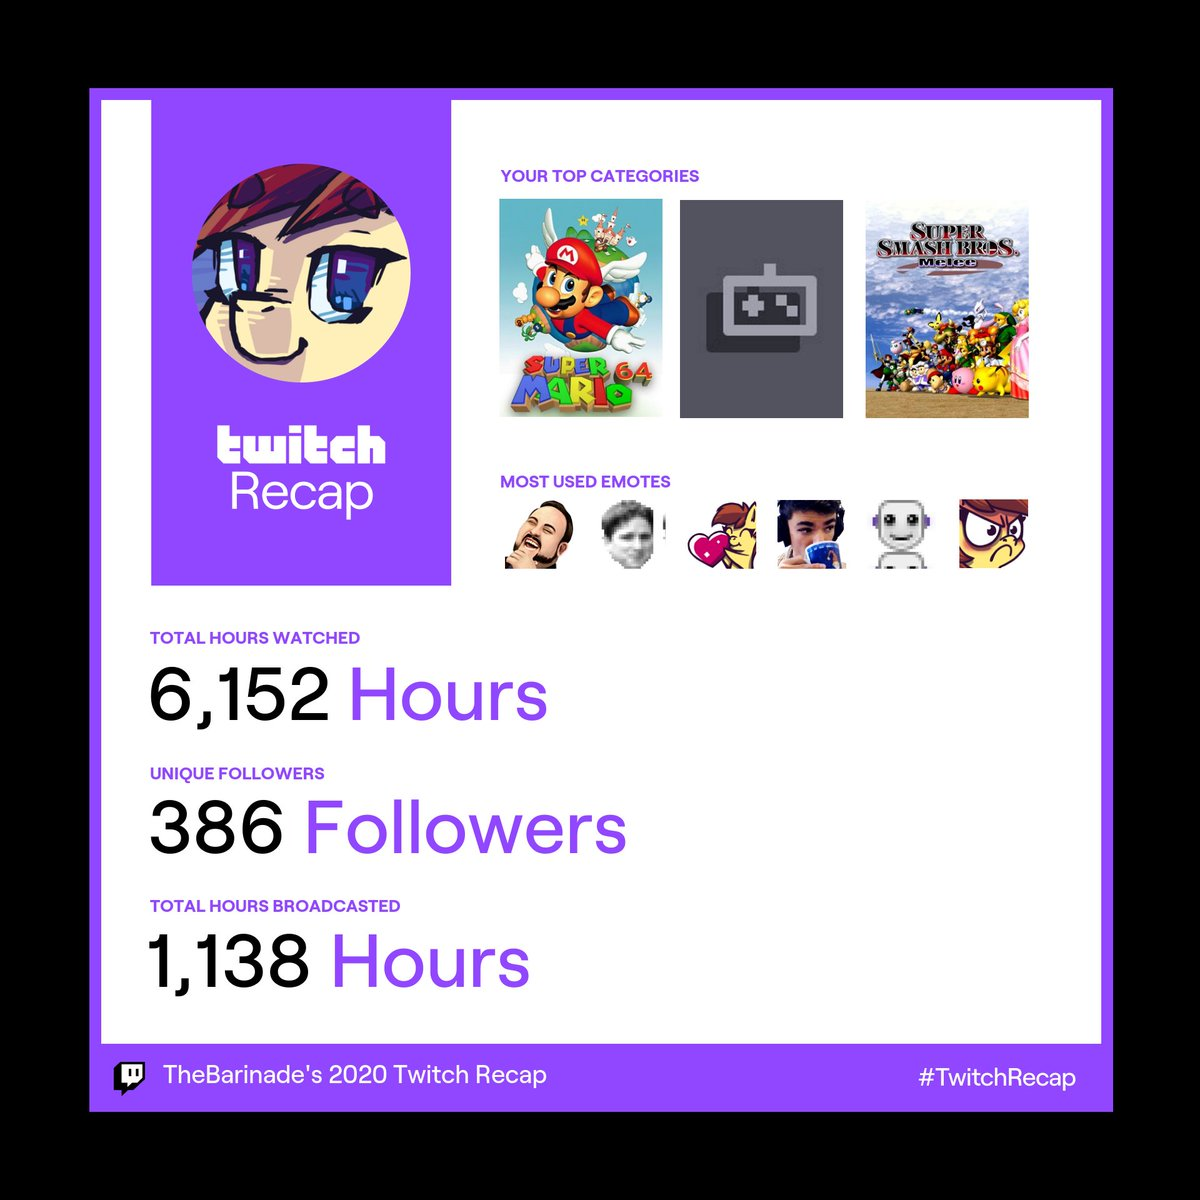 Started streaming frequently halfway through the year and these stats are fun! #TwitchRecap